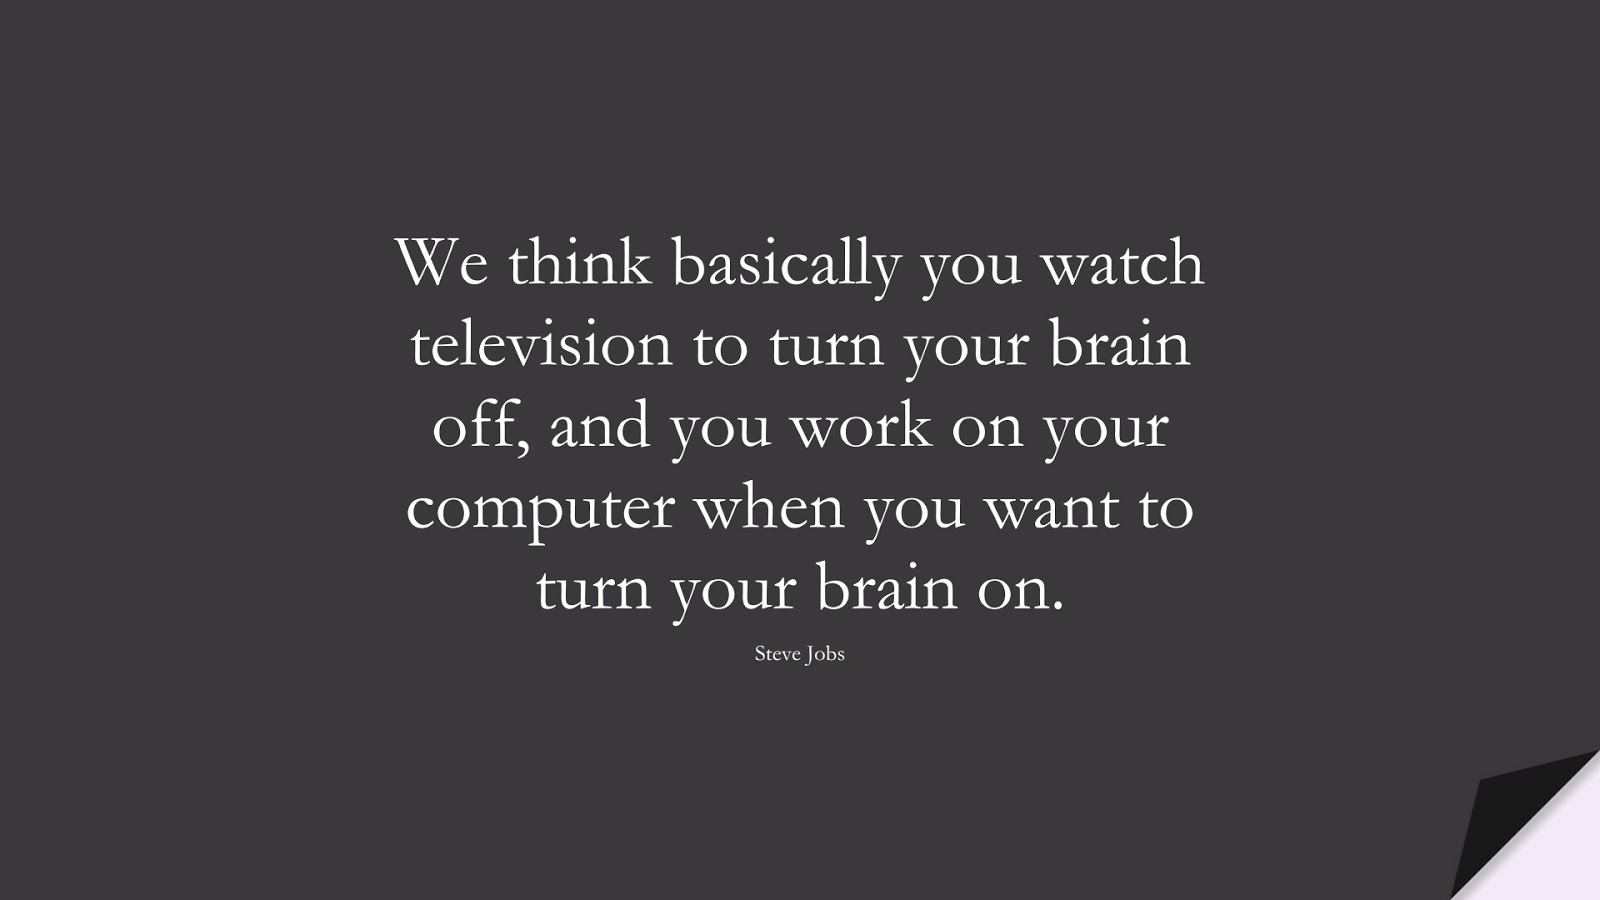 We think basically you watch television to turn your brain off, and you work on your computer when you want to turn your brain on. (Steve Jobs);  #SteveJobsQuotes